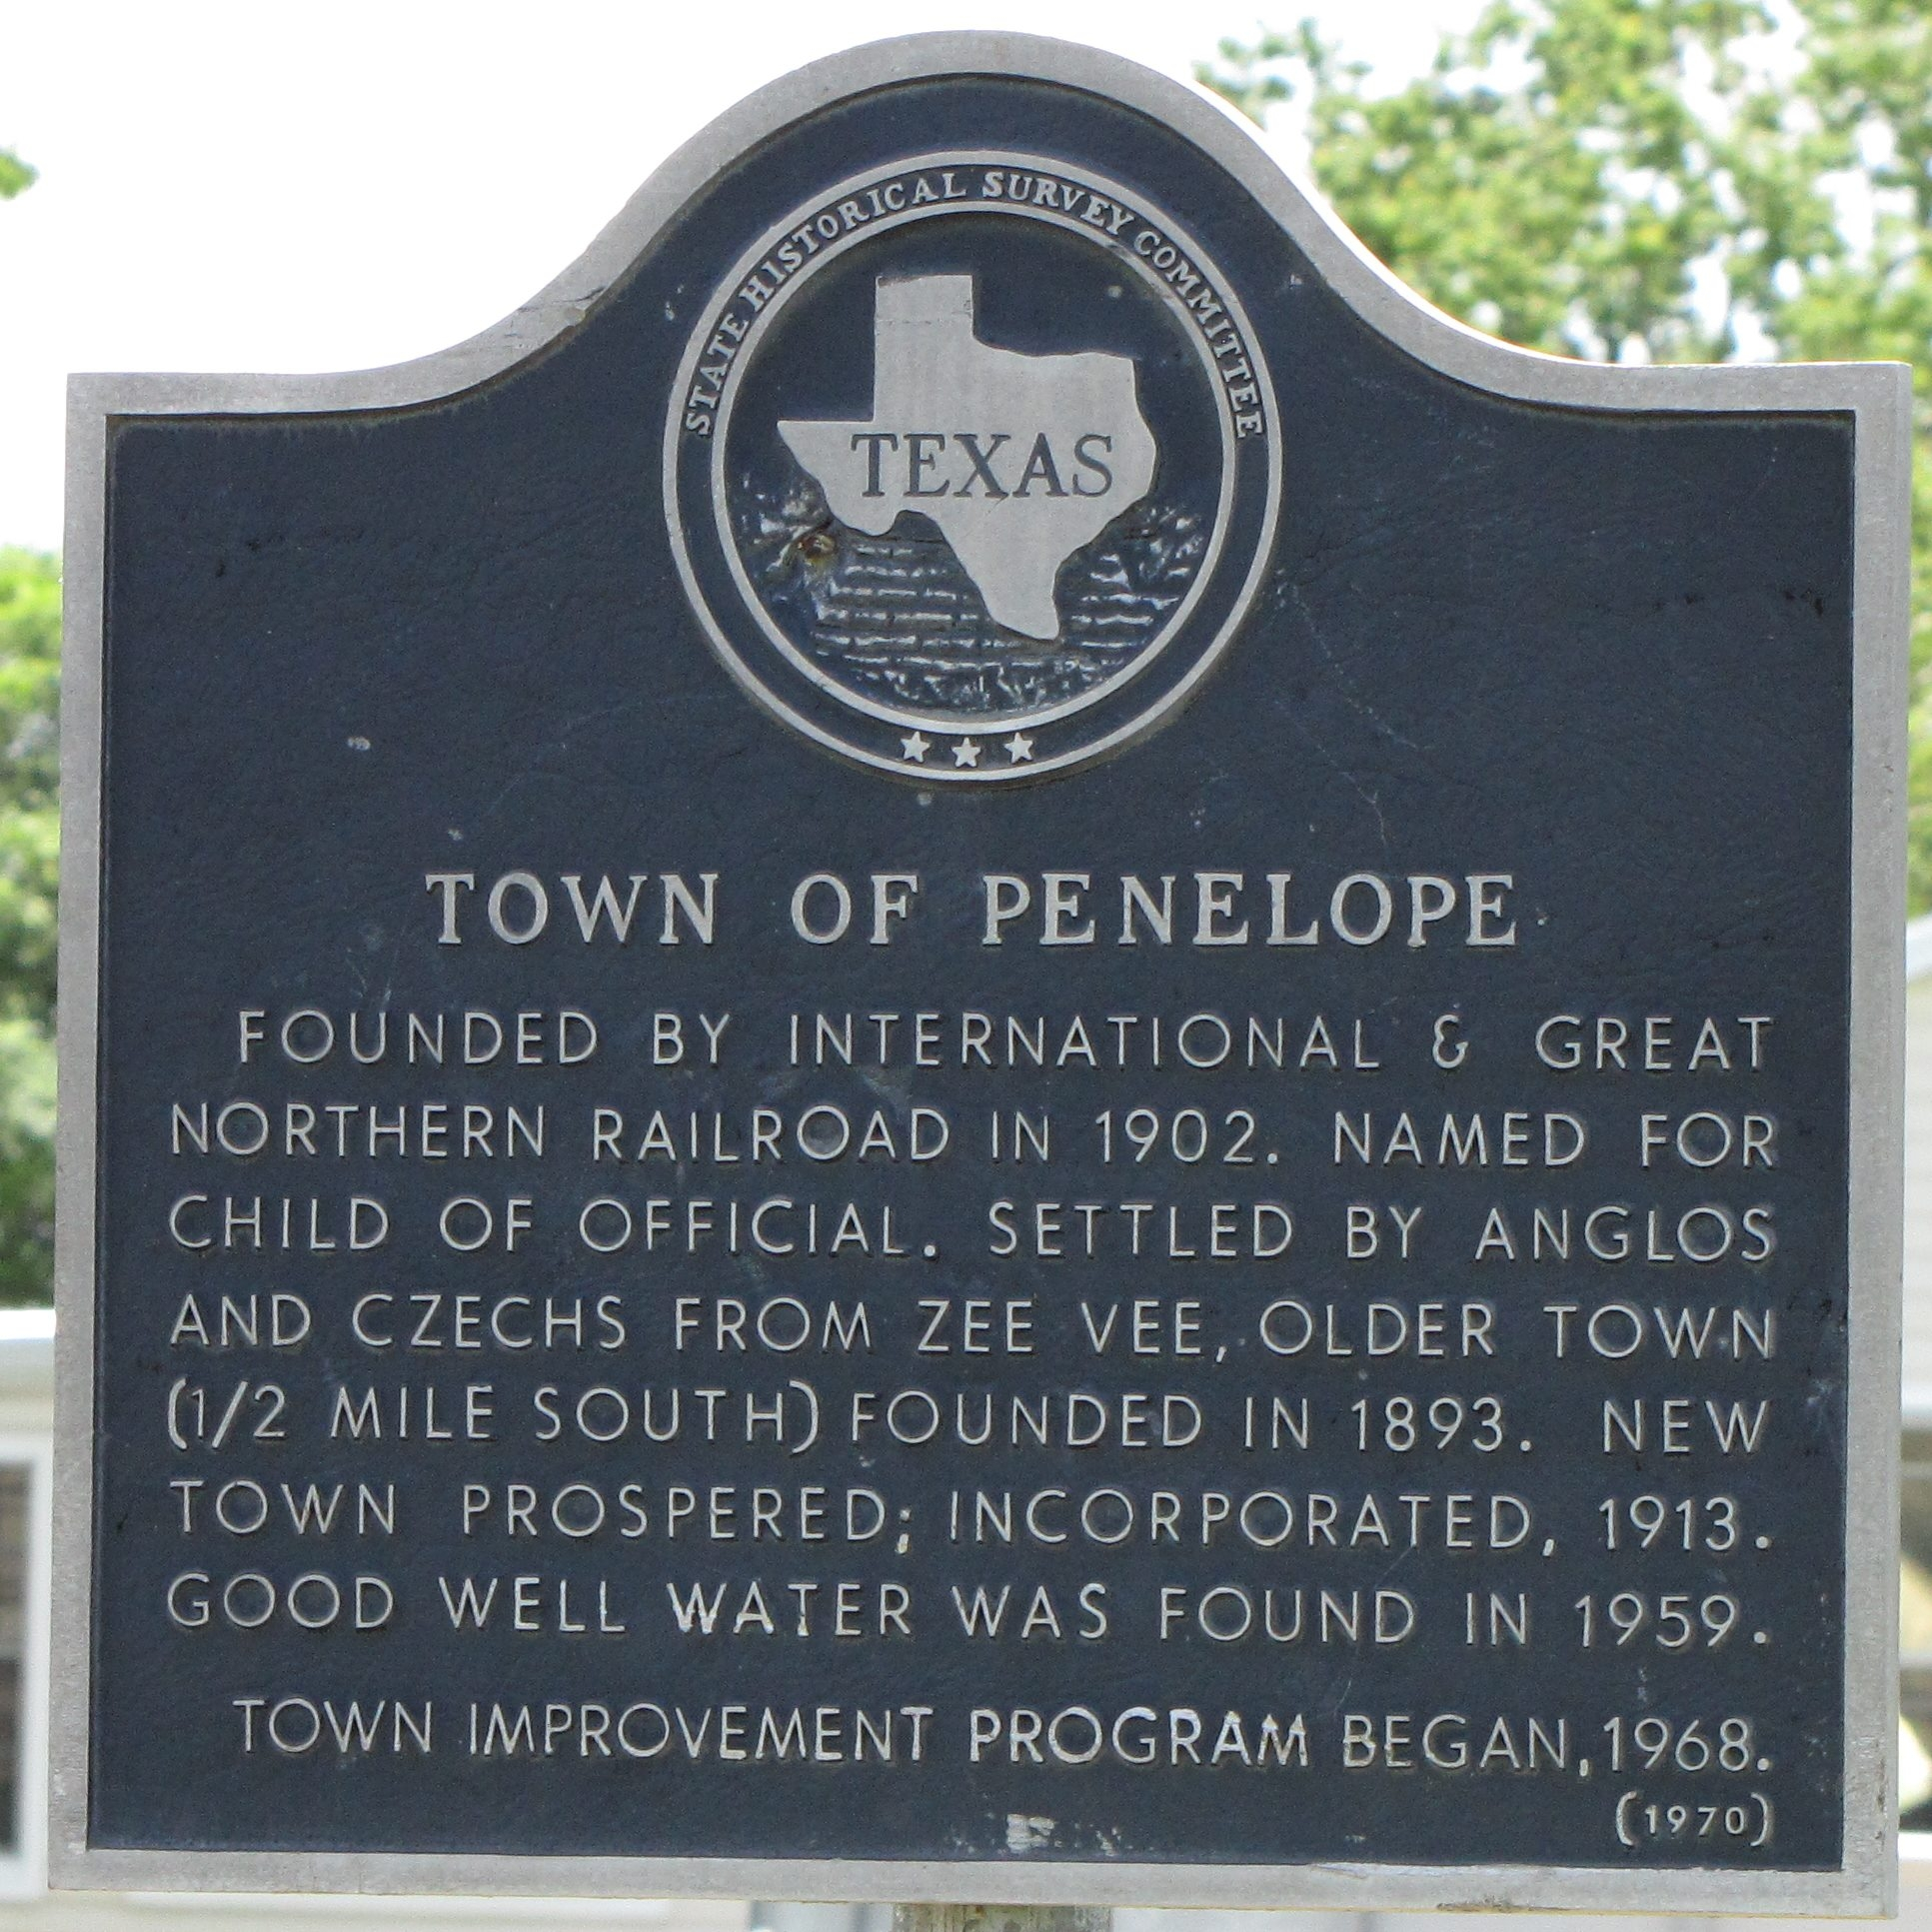 Town of Penelope Texas Historical Marker